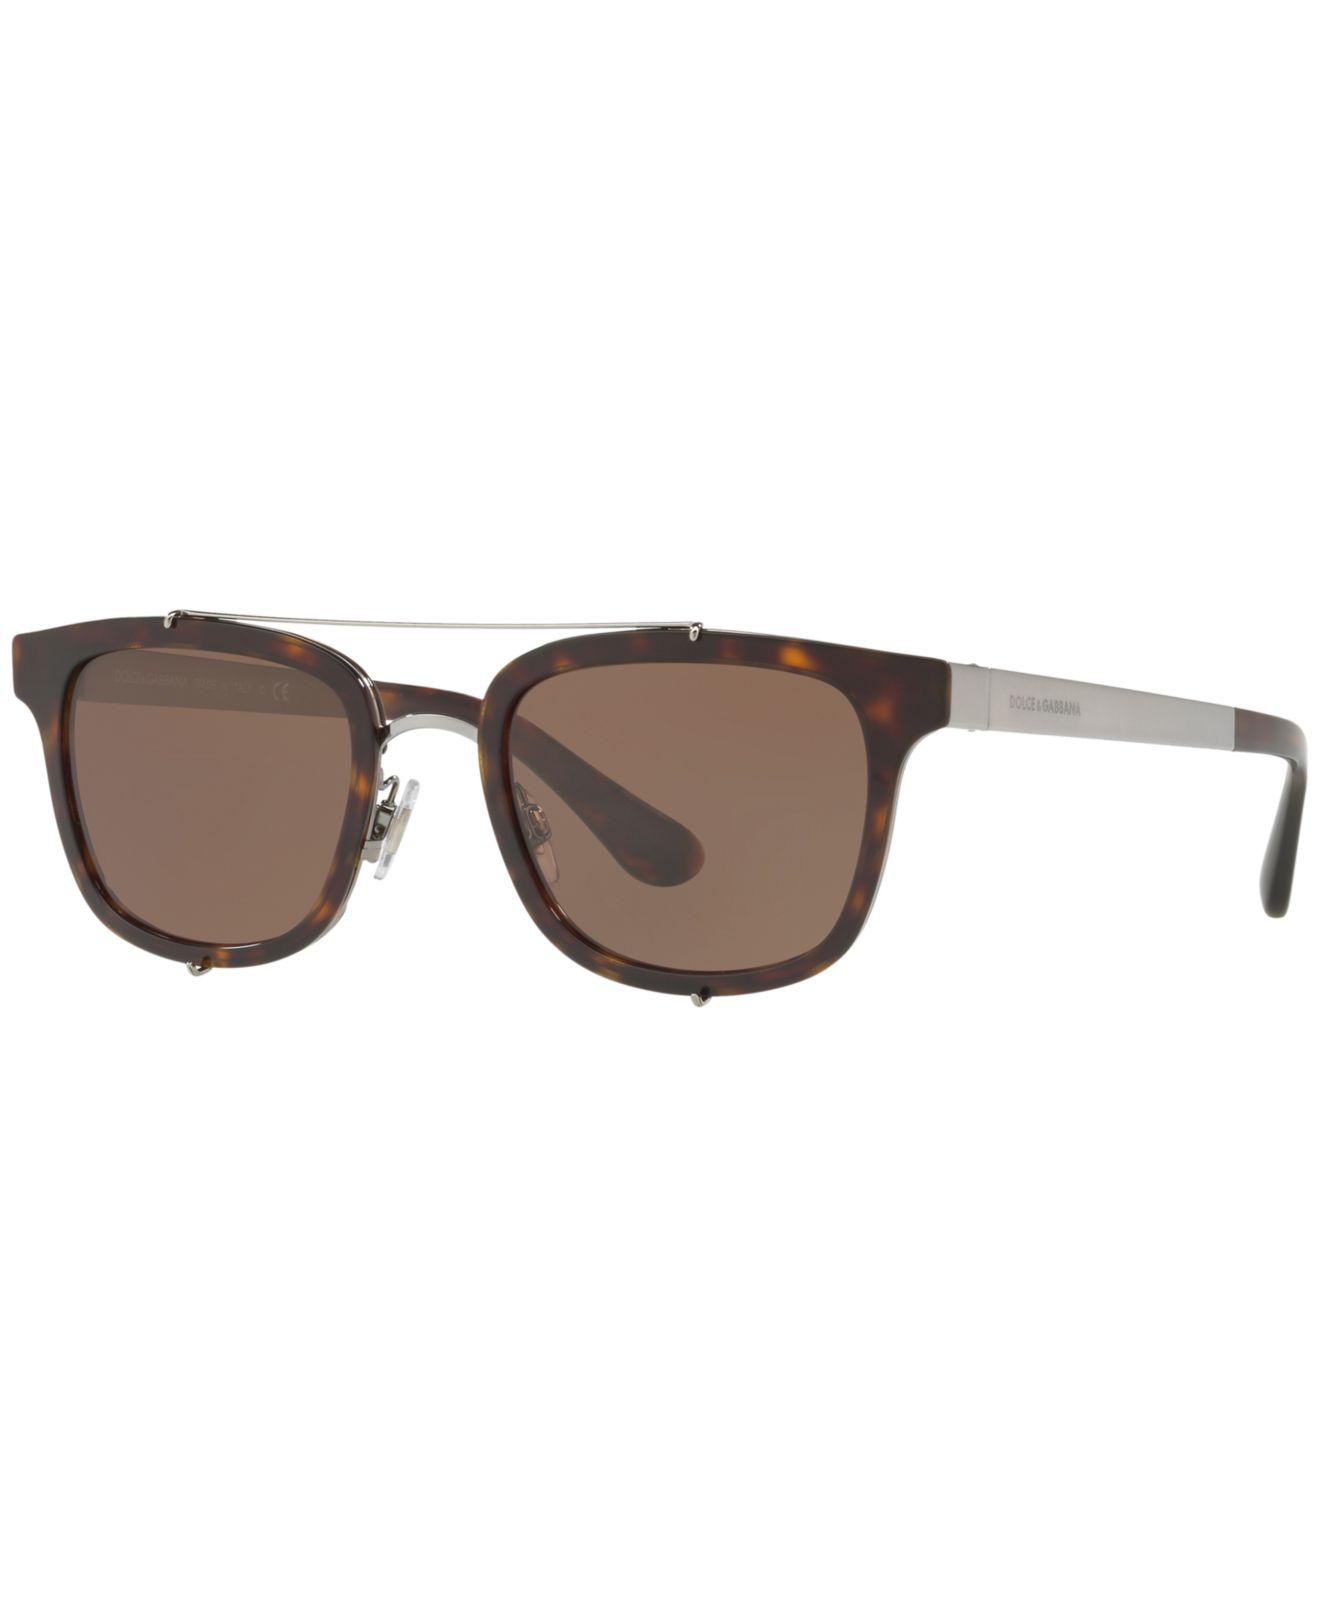 2ba19caa4a05 Dolce   Gabbana. Women s Brown Sunglasses ...